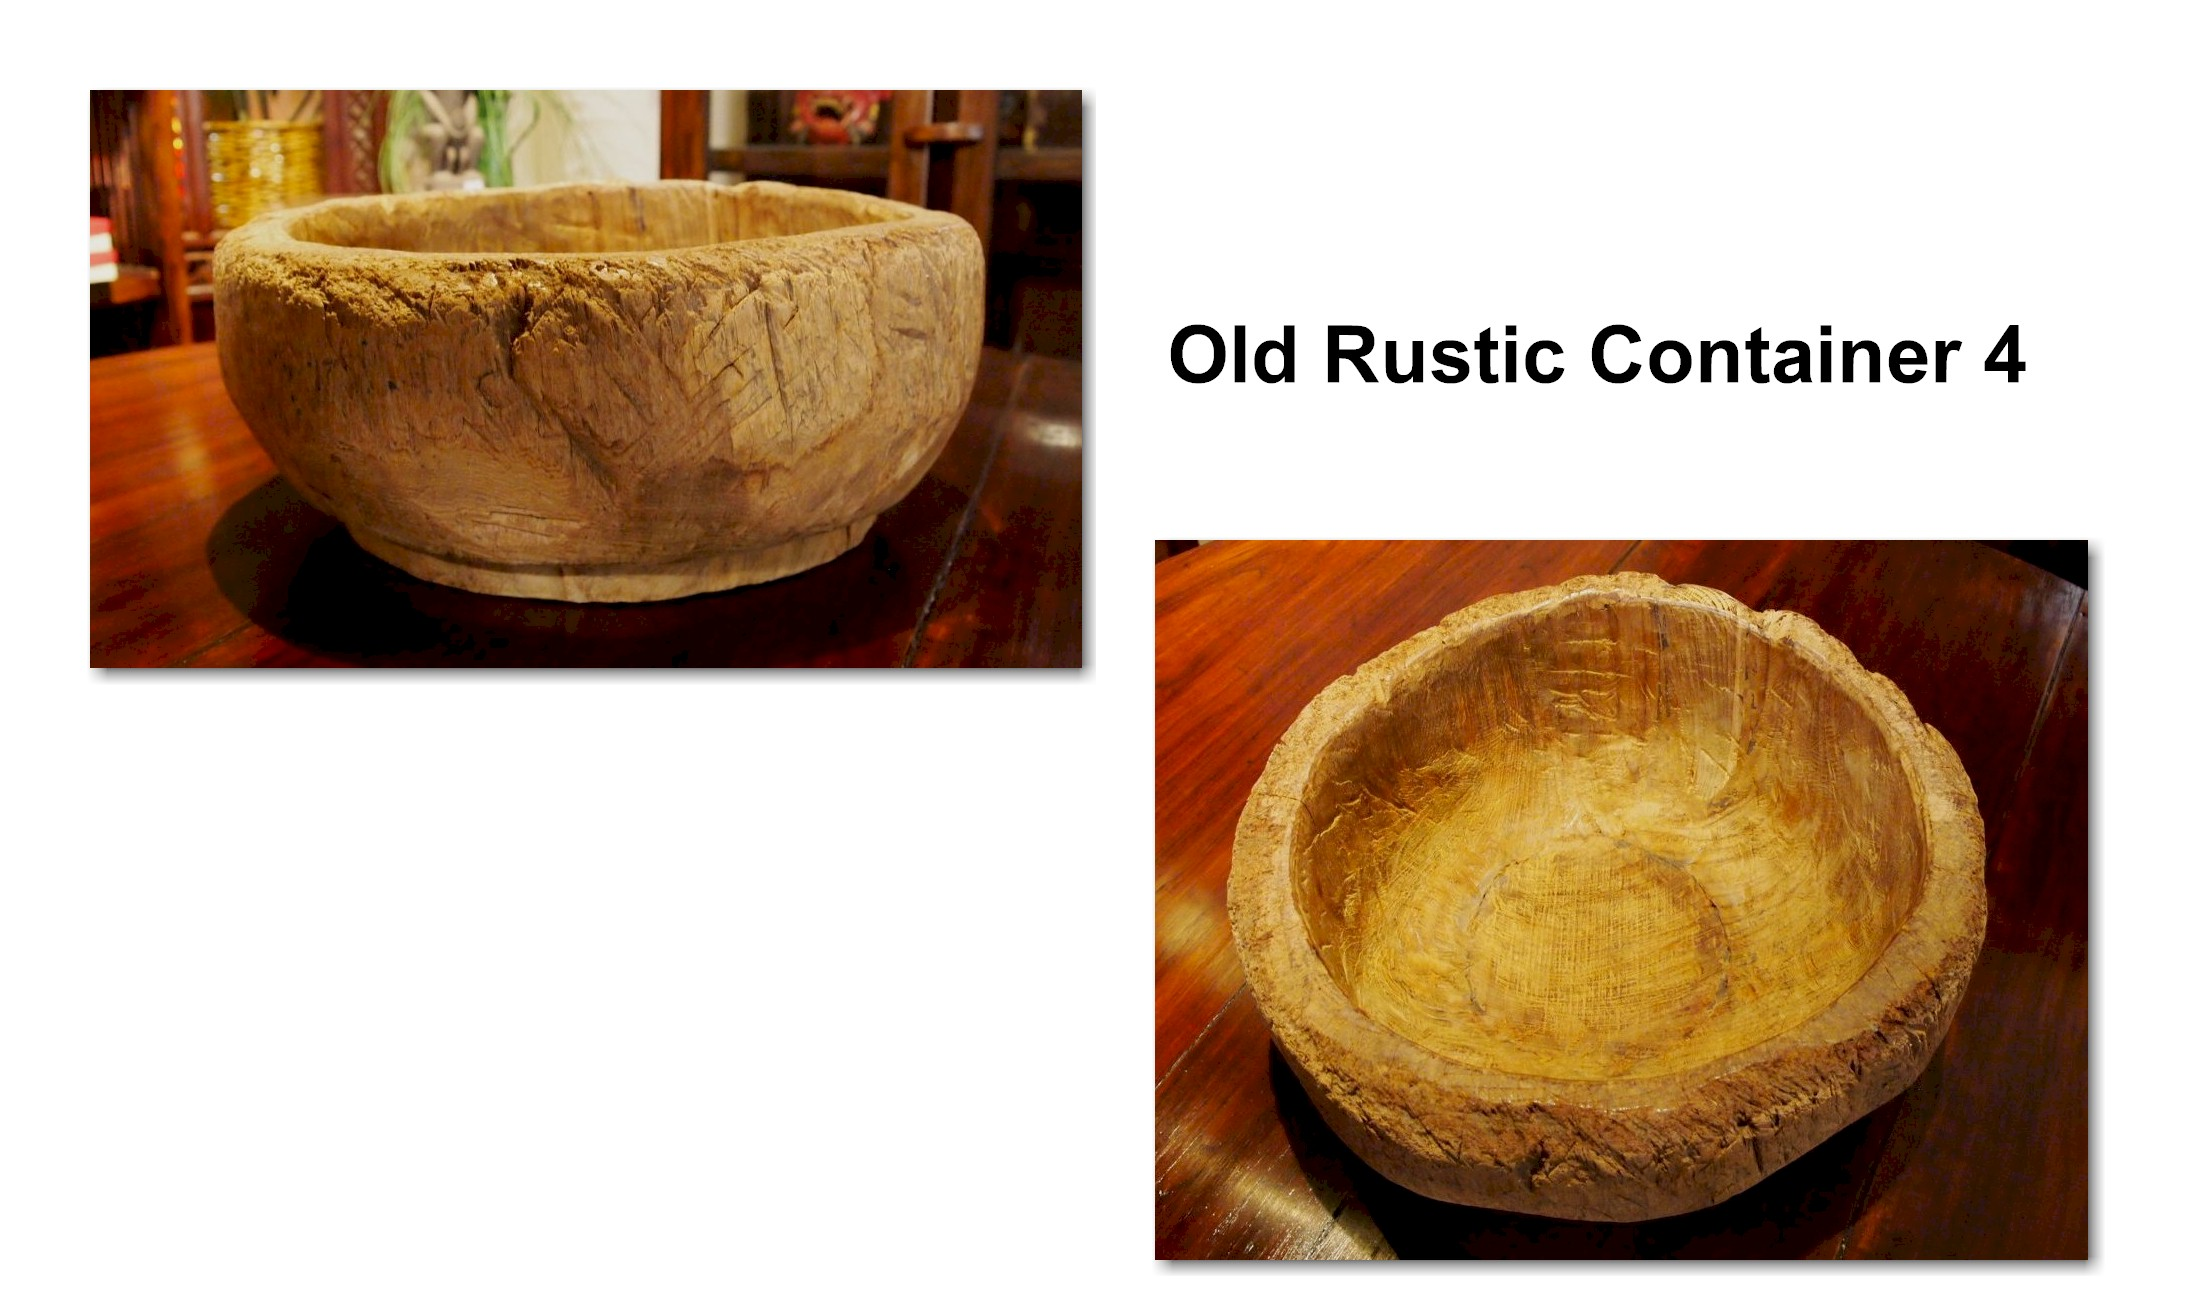 Old Rustic Container 4